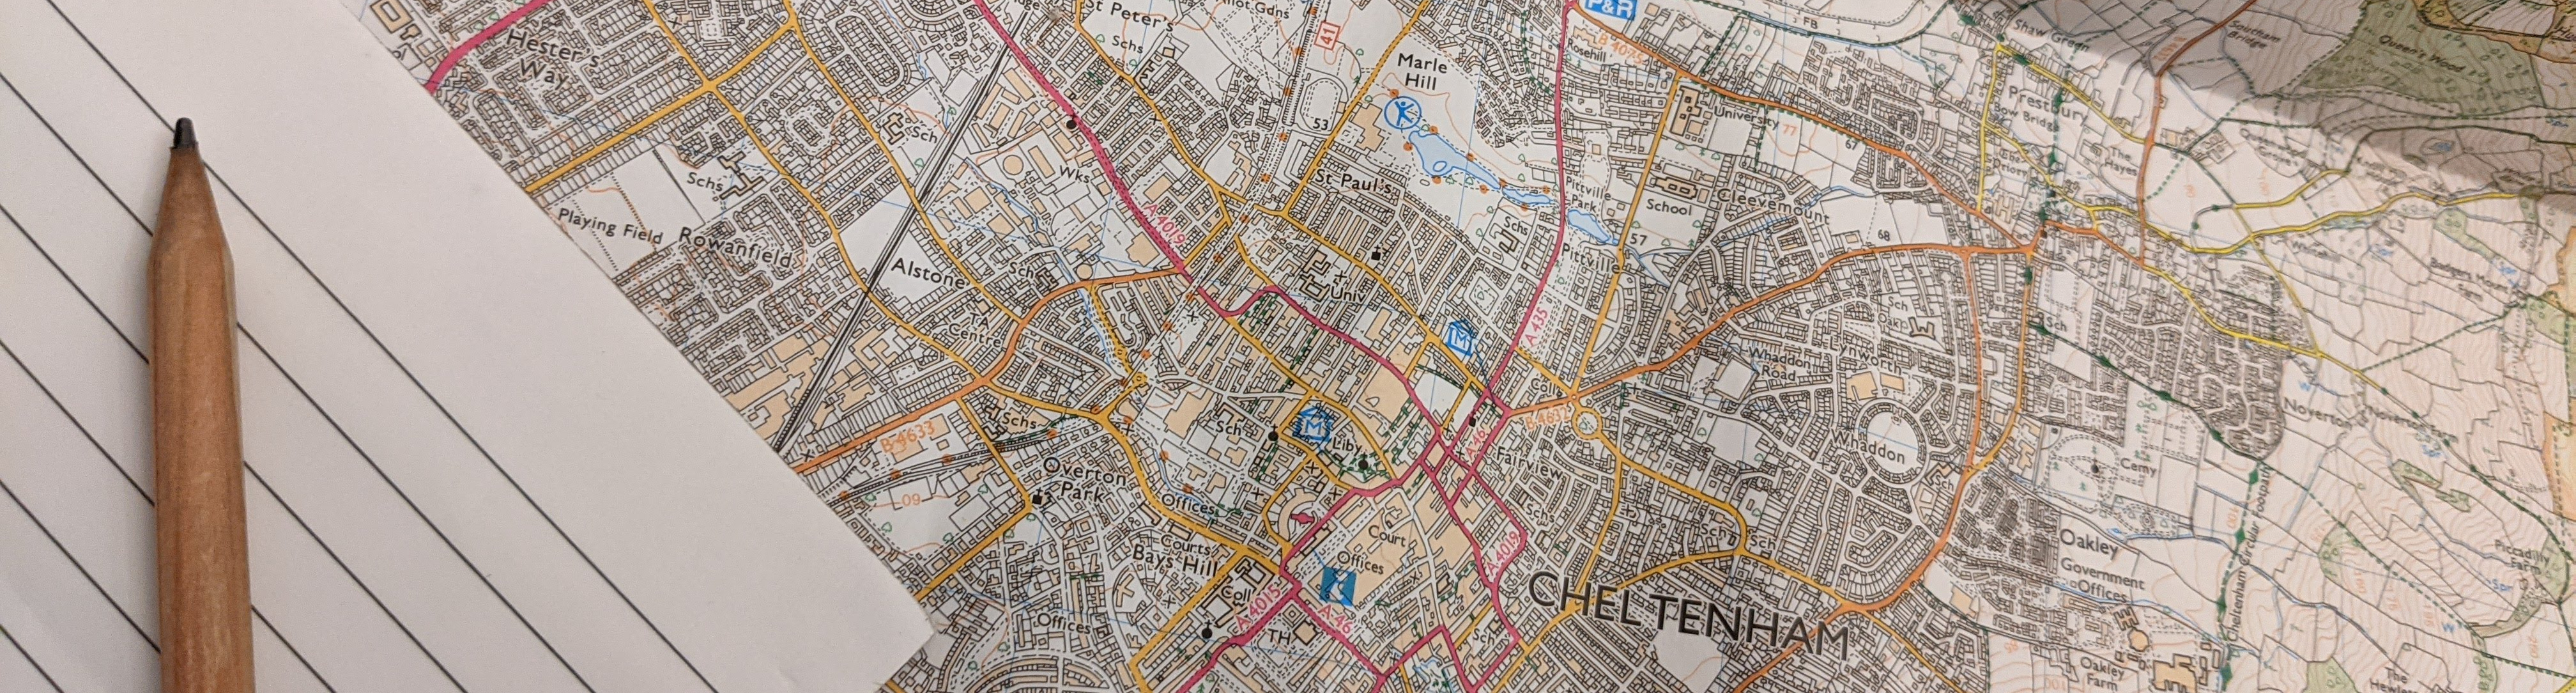 Map of Cheltenham with notepad and pencil